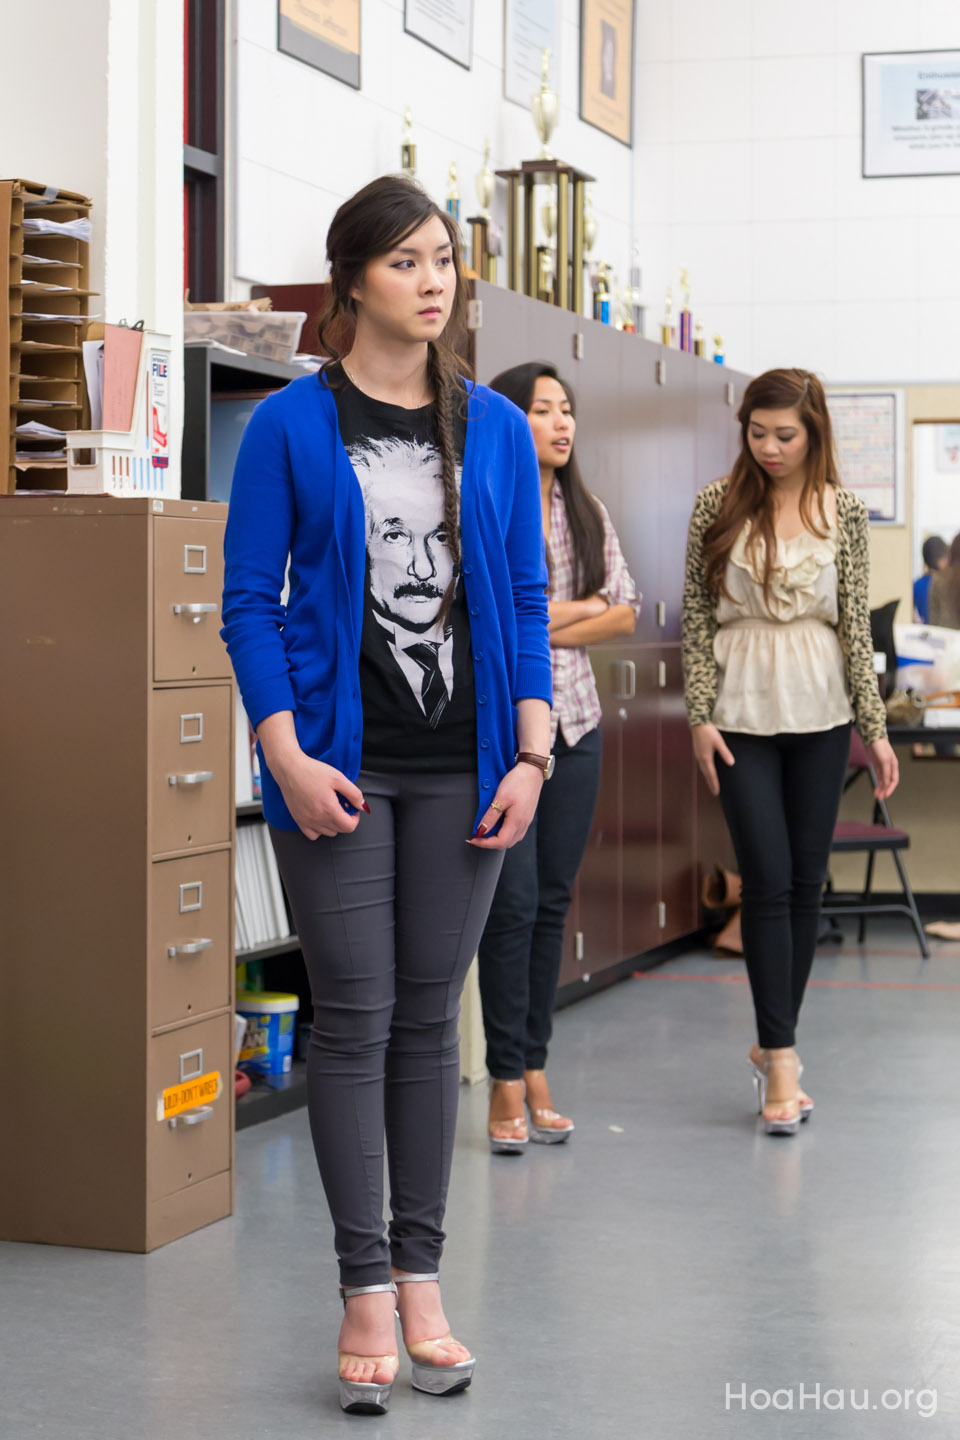 Contestant Practice - January 18, 2014 at Mt Pleasant High School - Image 121